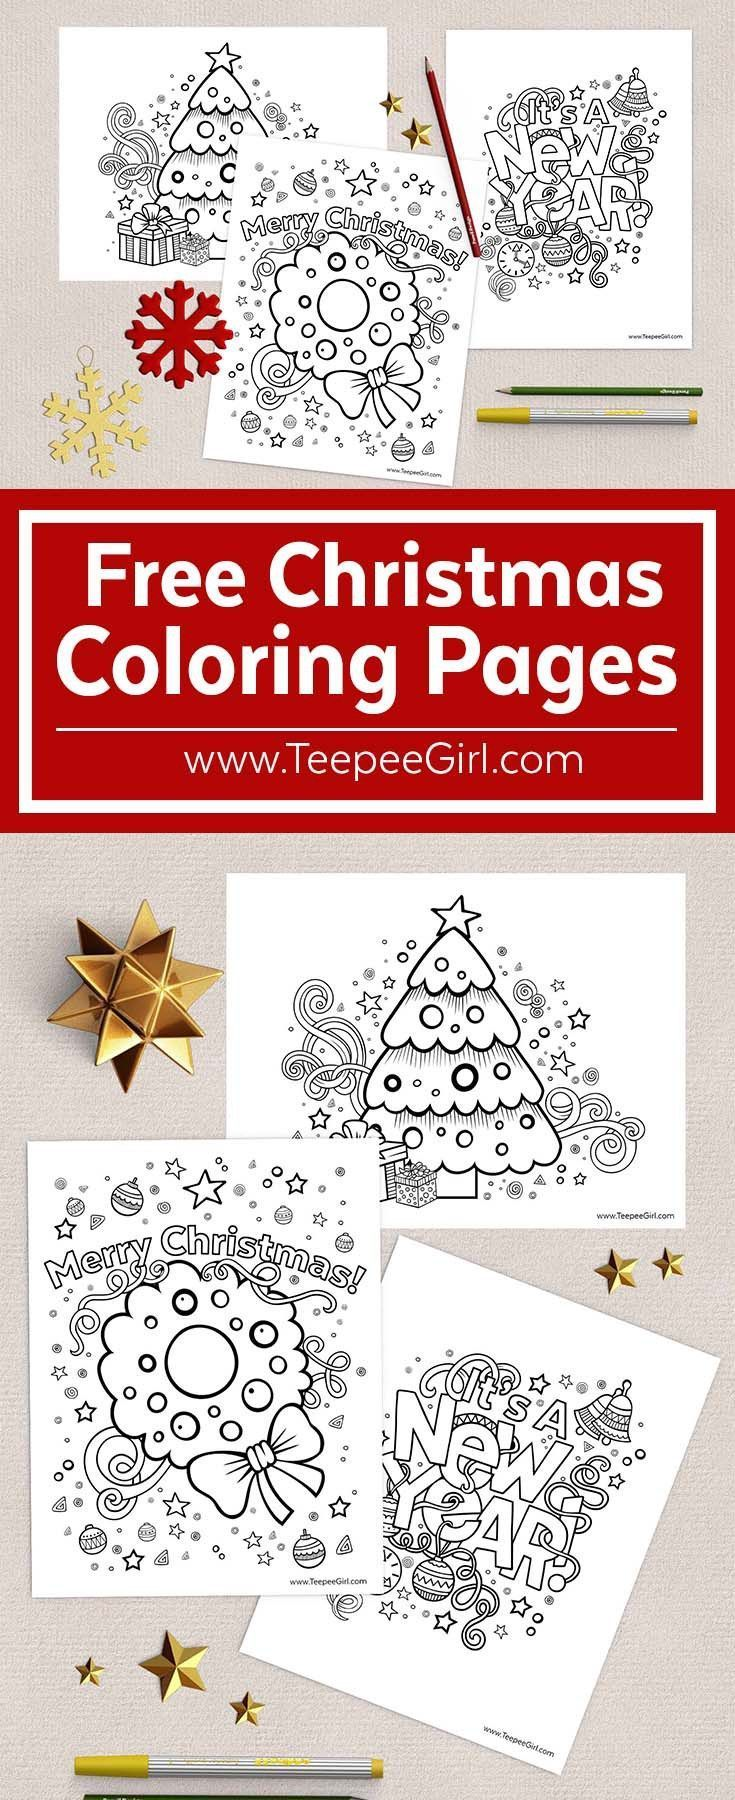 These Free Christmas Coloring Pages Are The Perfect Way To Keep Kids Happy And B